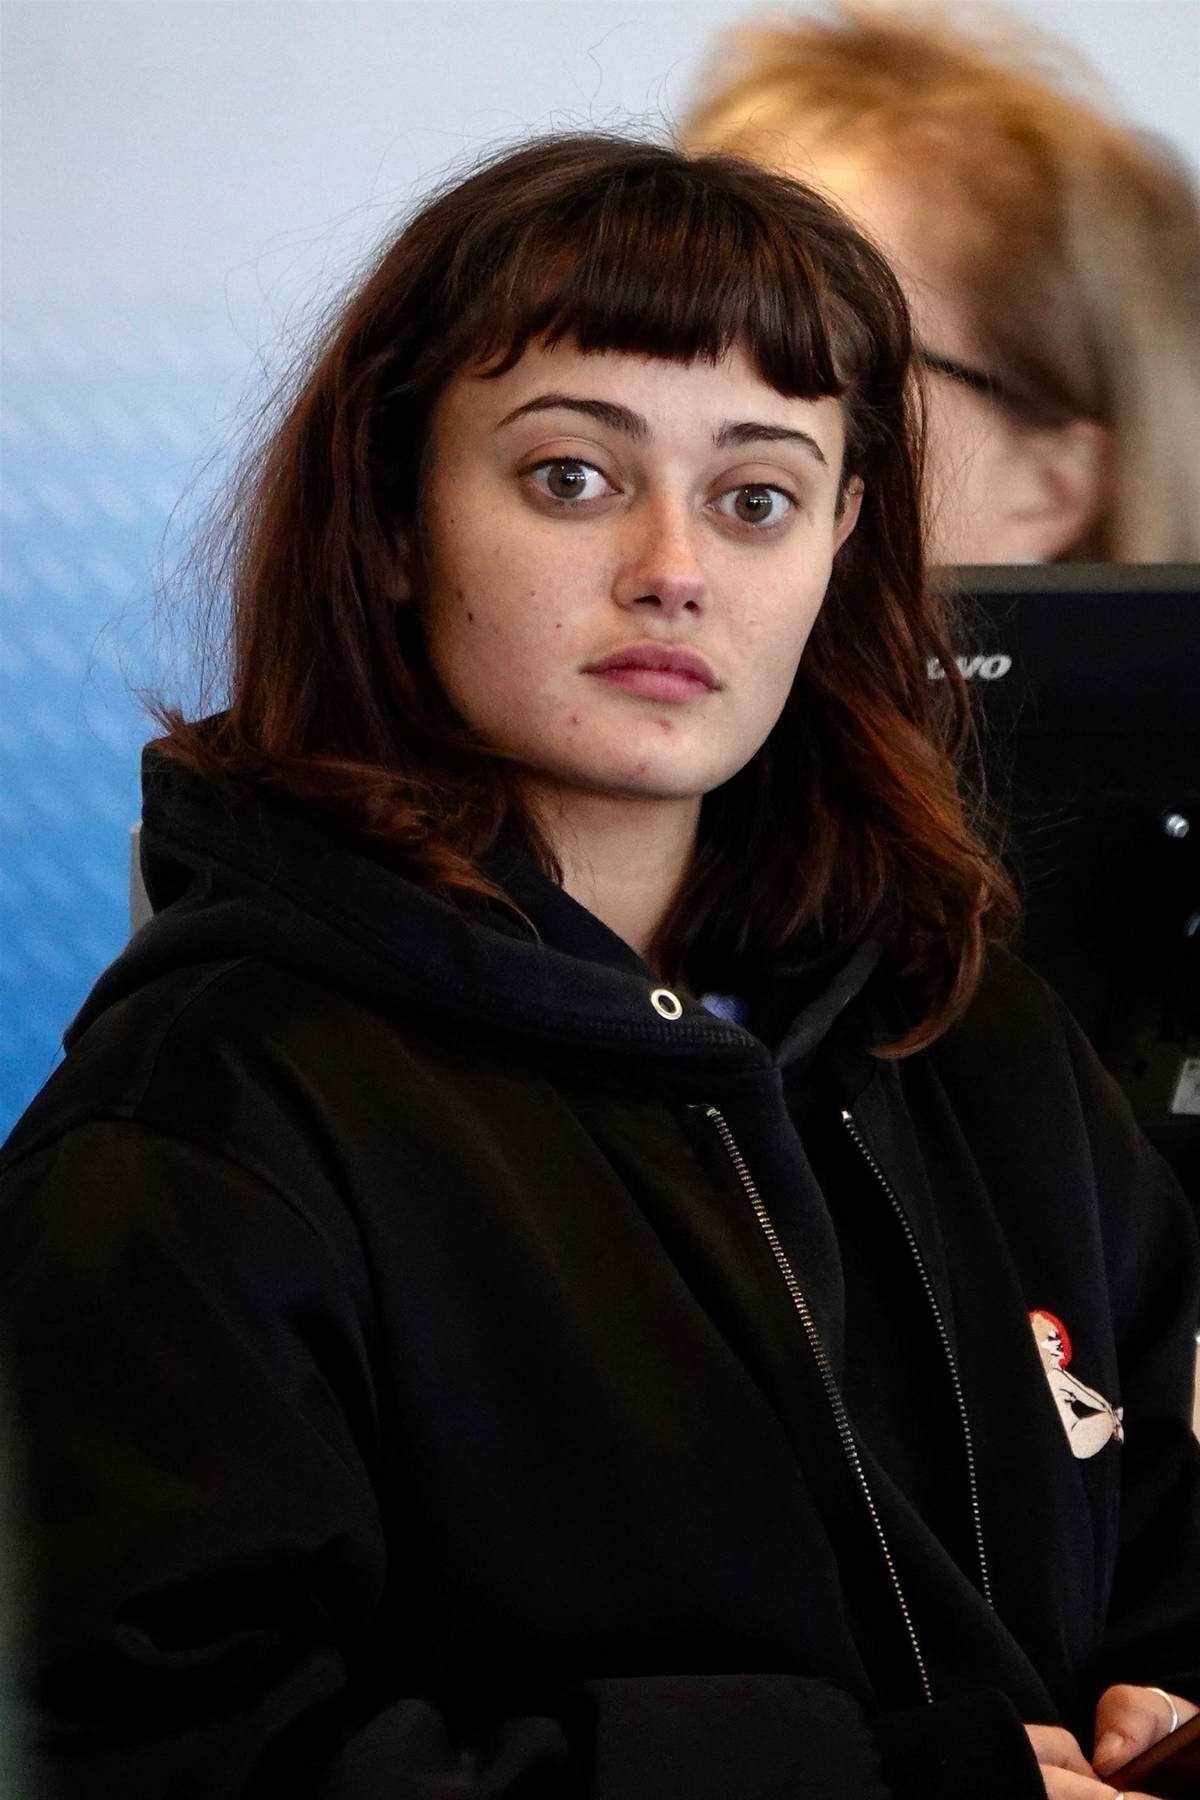 Ella Purnell is seen departing on a flight at LAX airport in Los Angeles